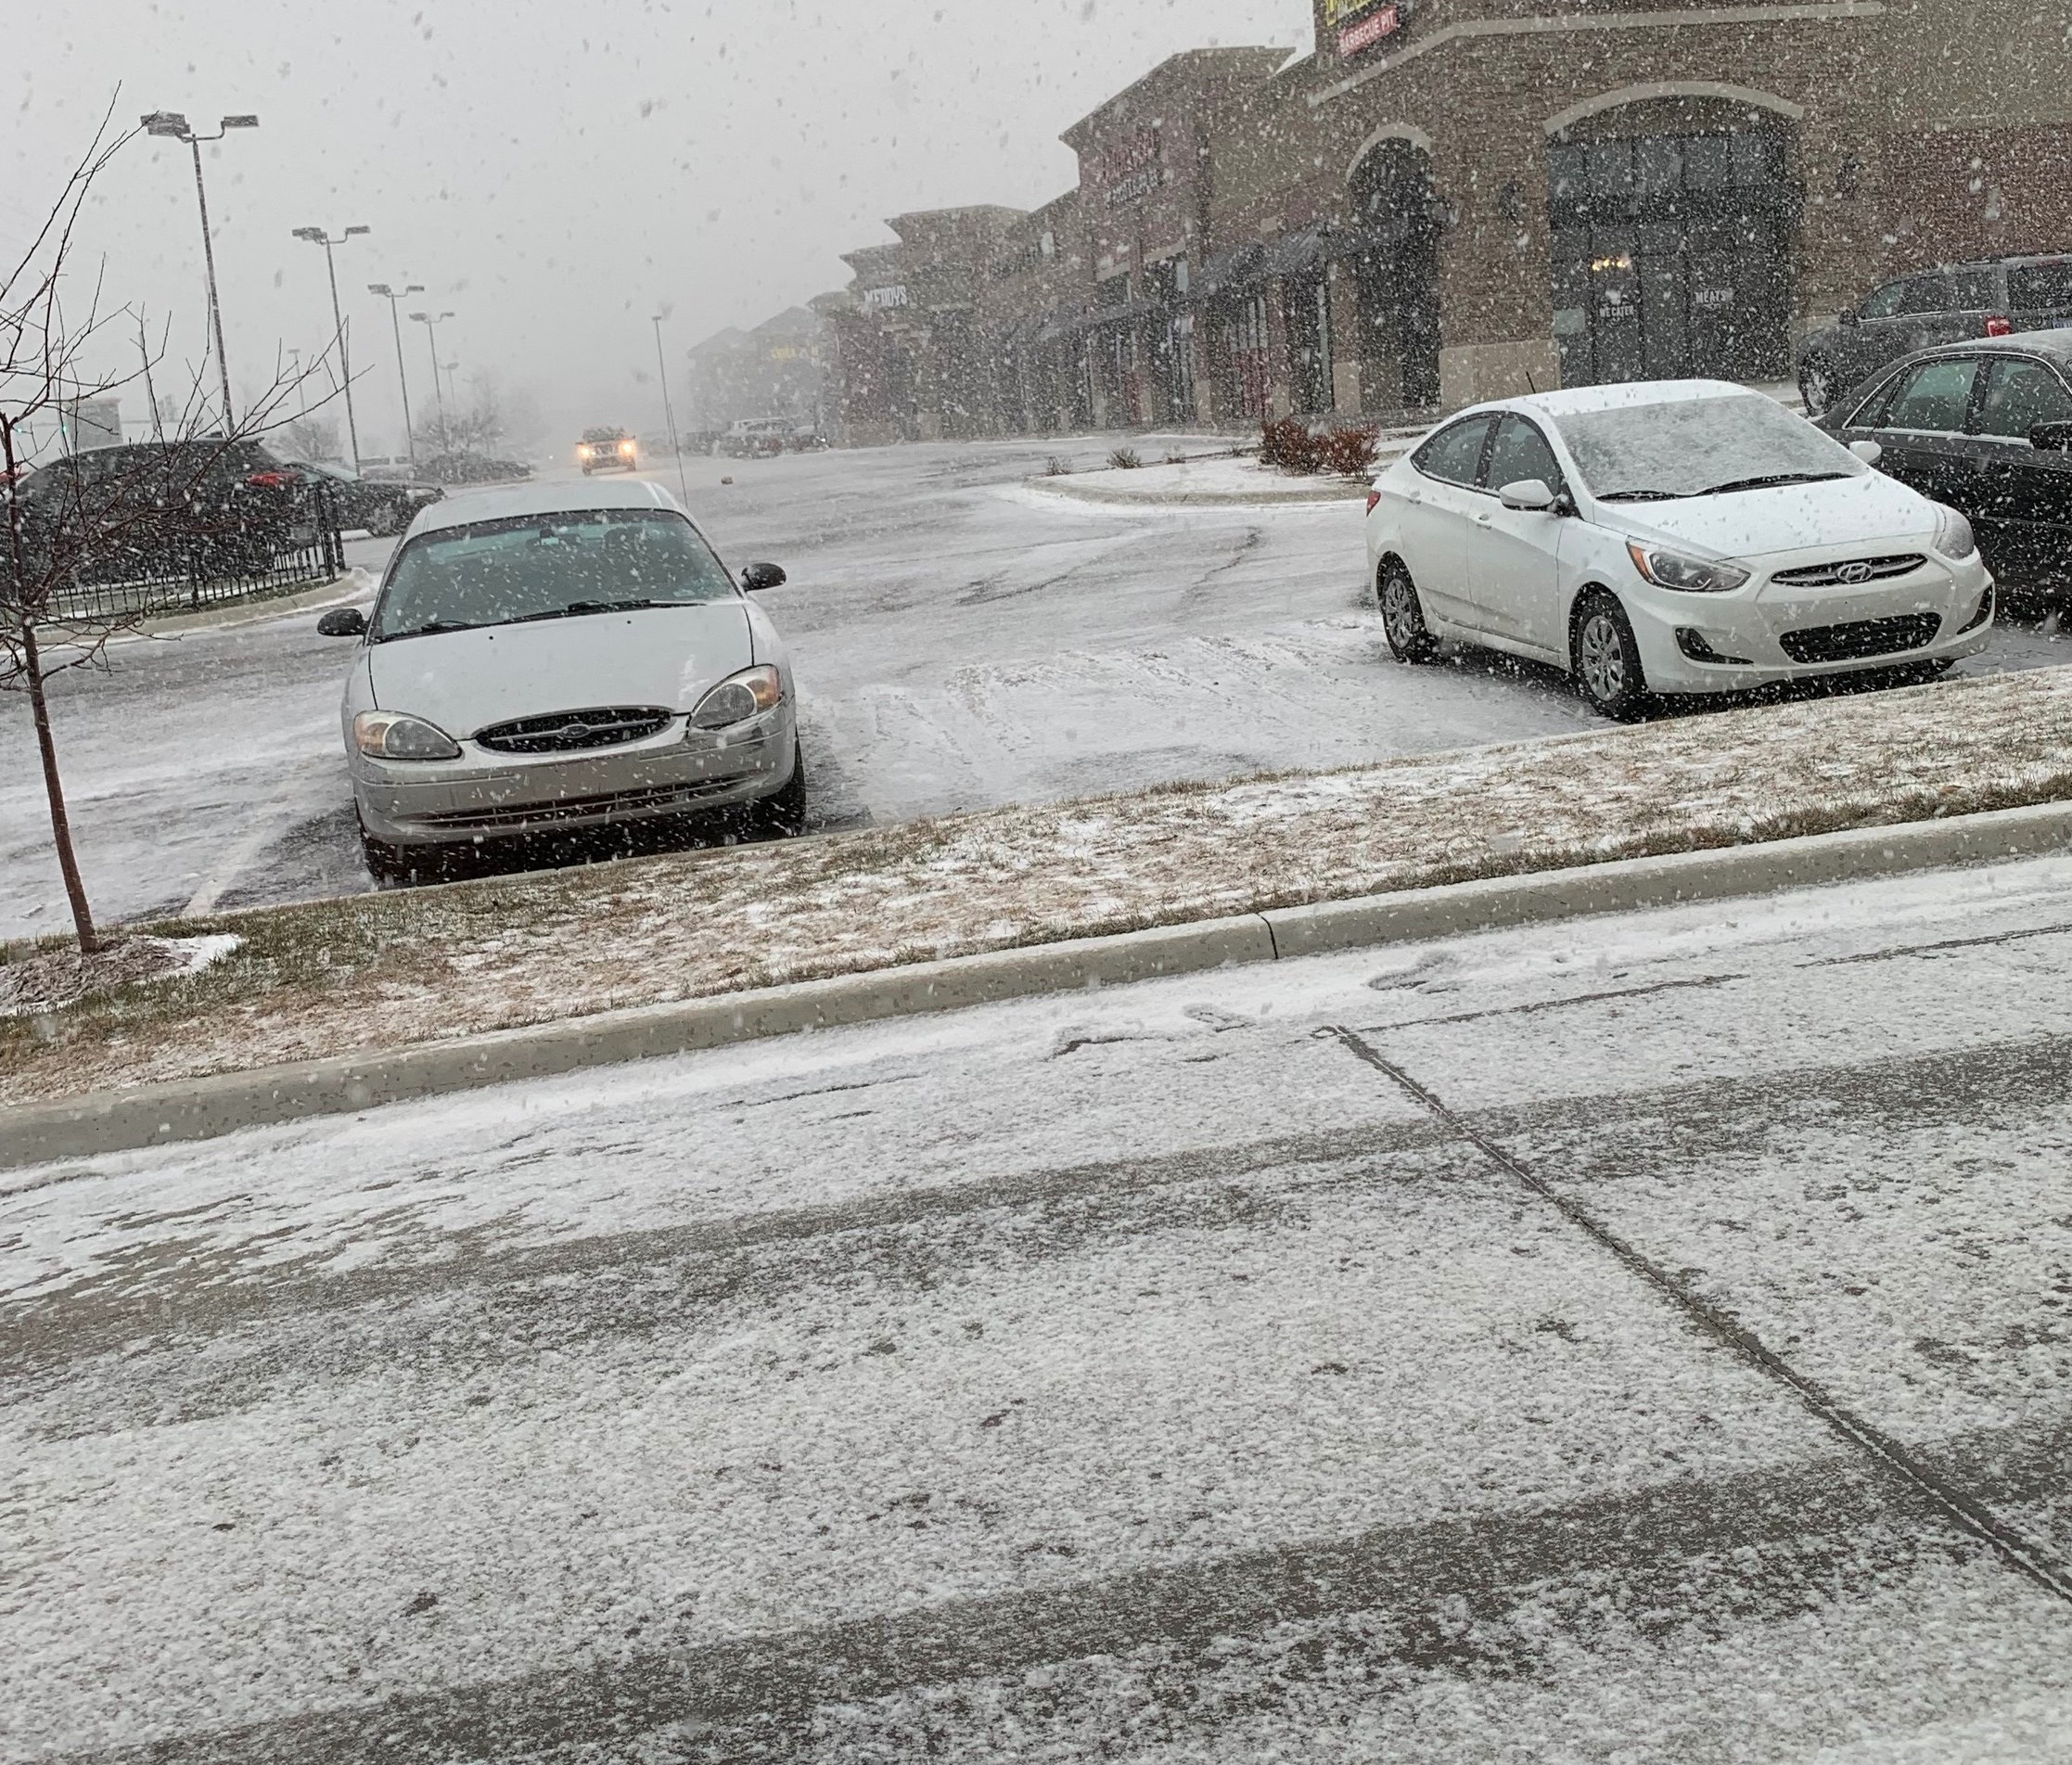 Picture I snapped of the fast-falling snow before the incident.